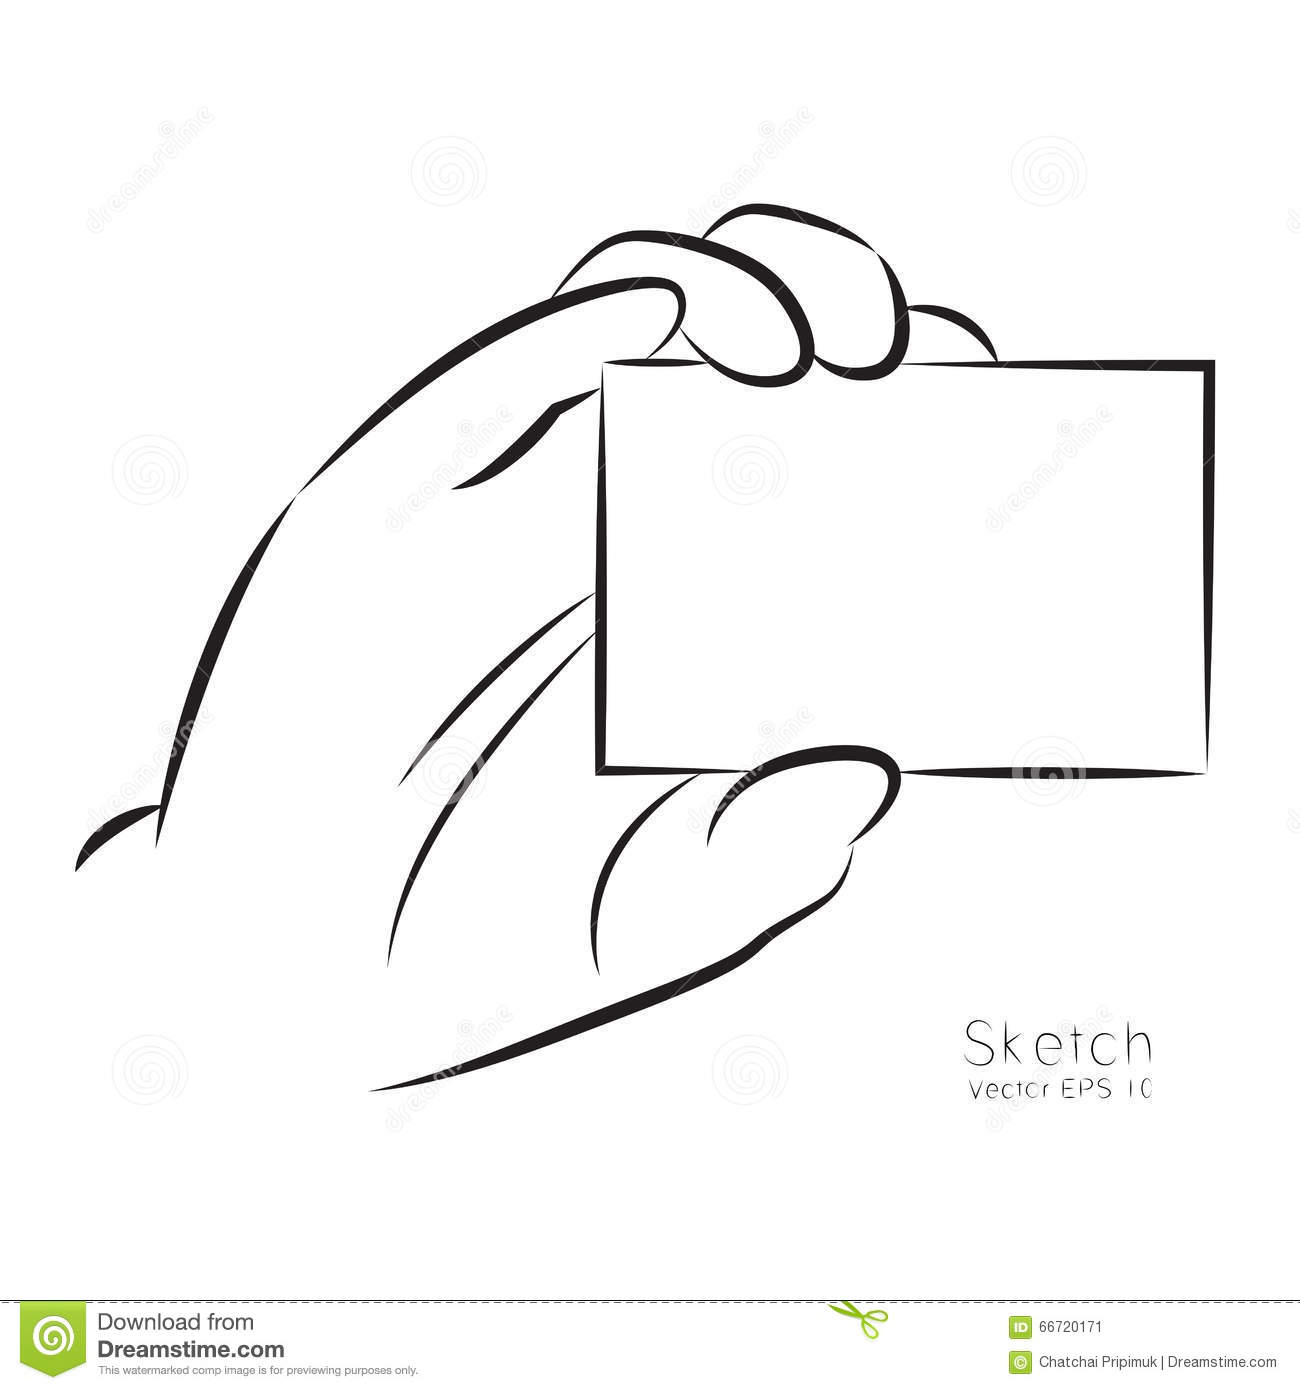 using clipart on business cards - photo #31